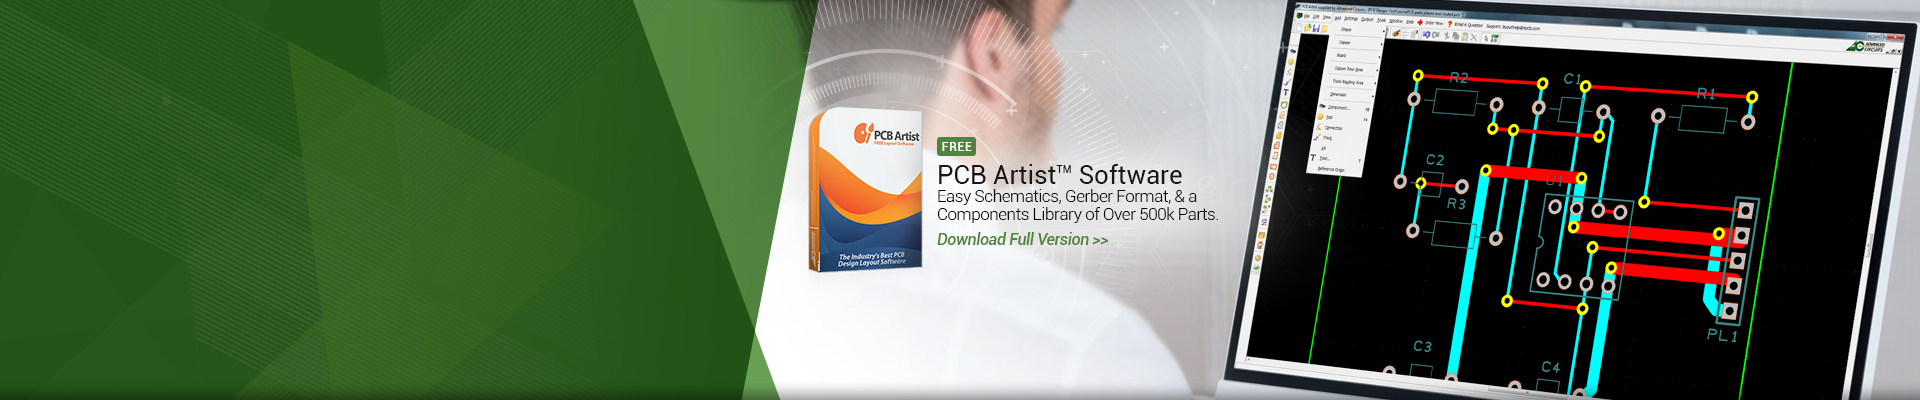 PCB Artist Software